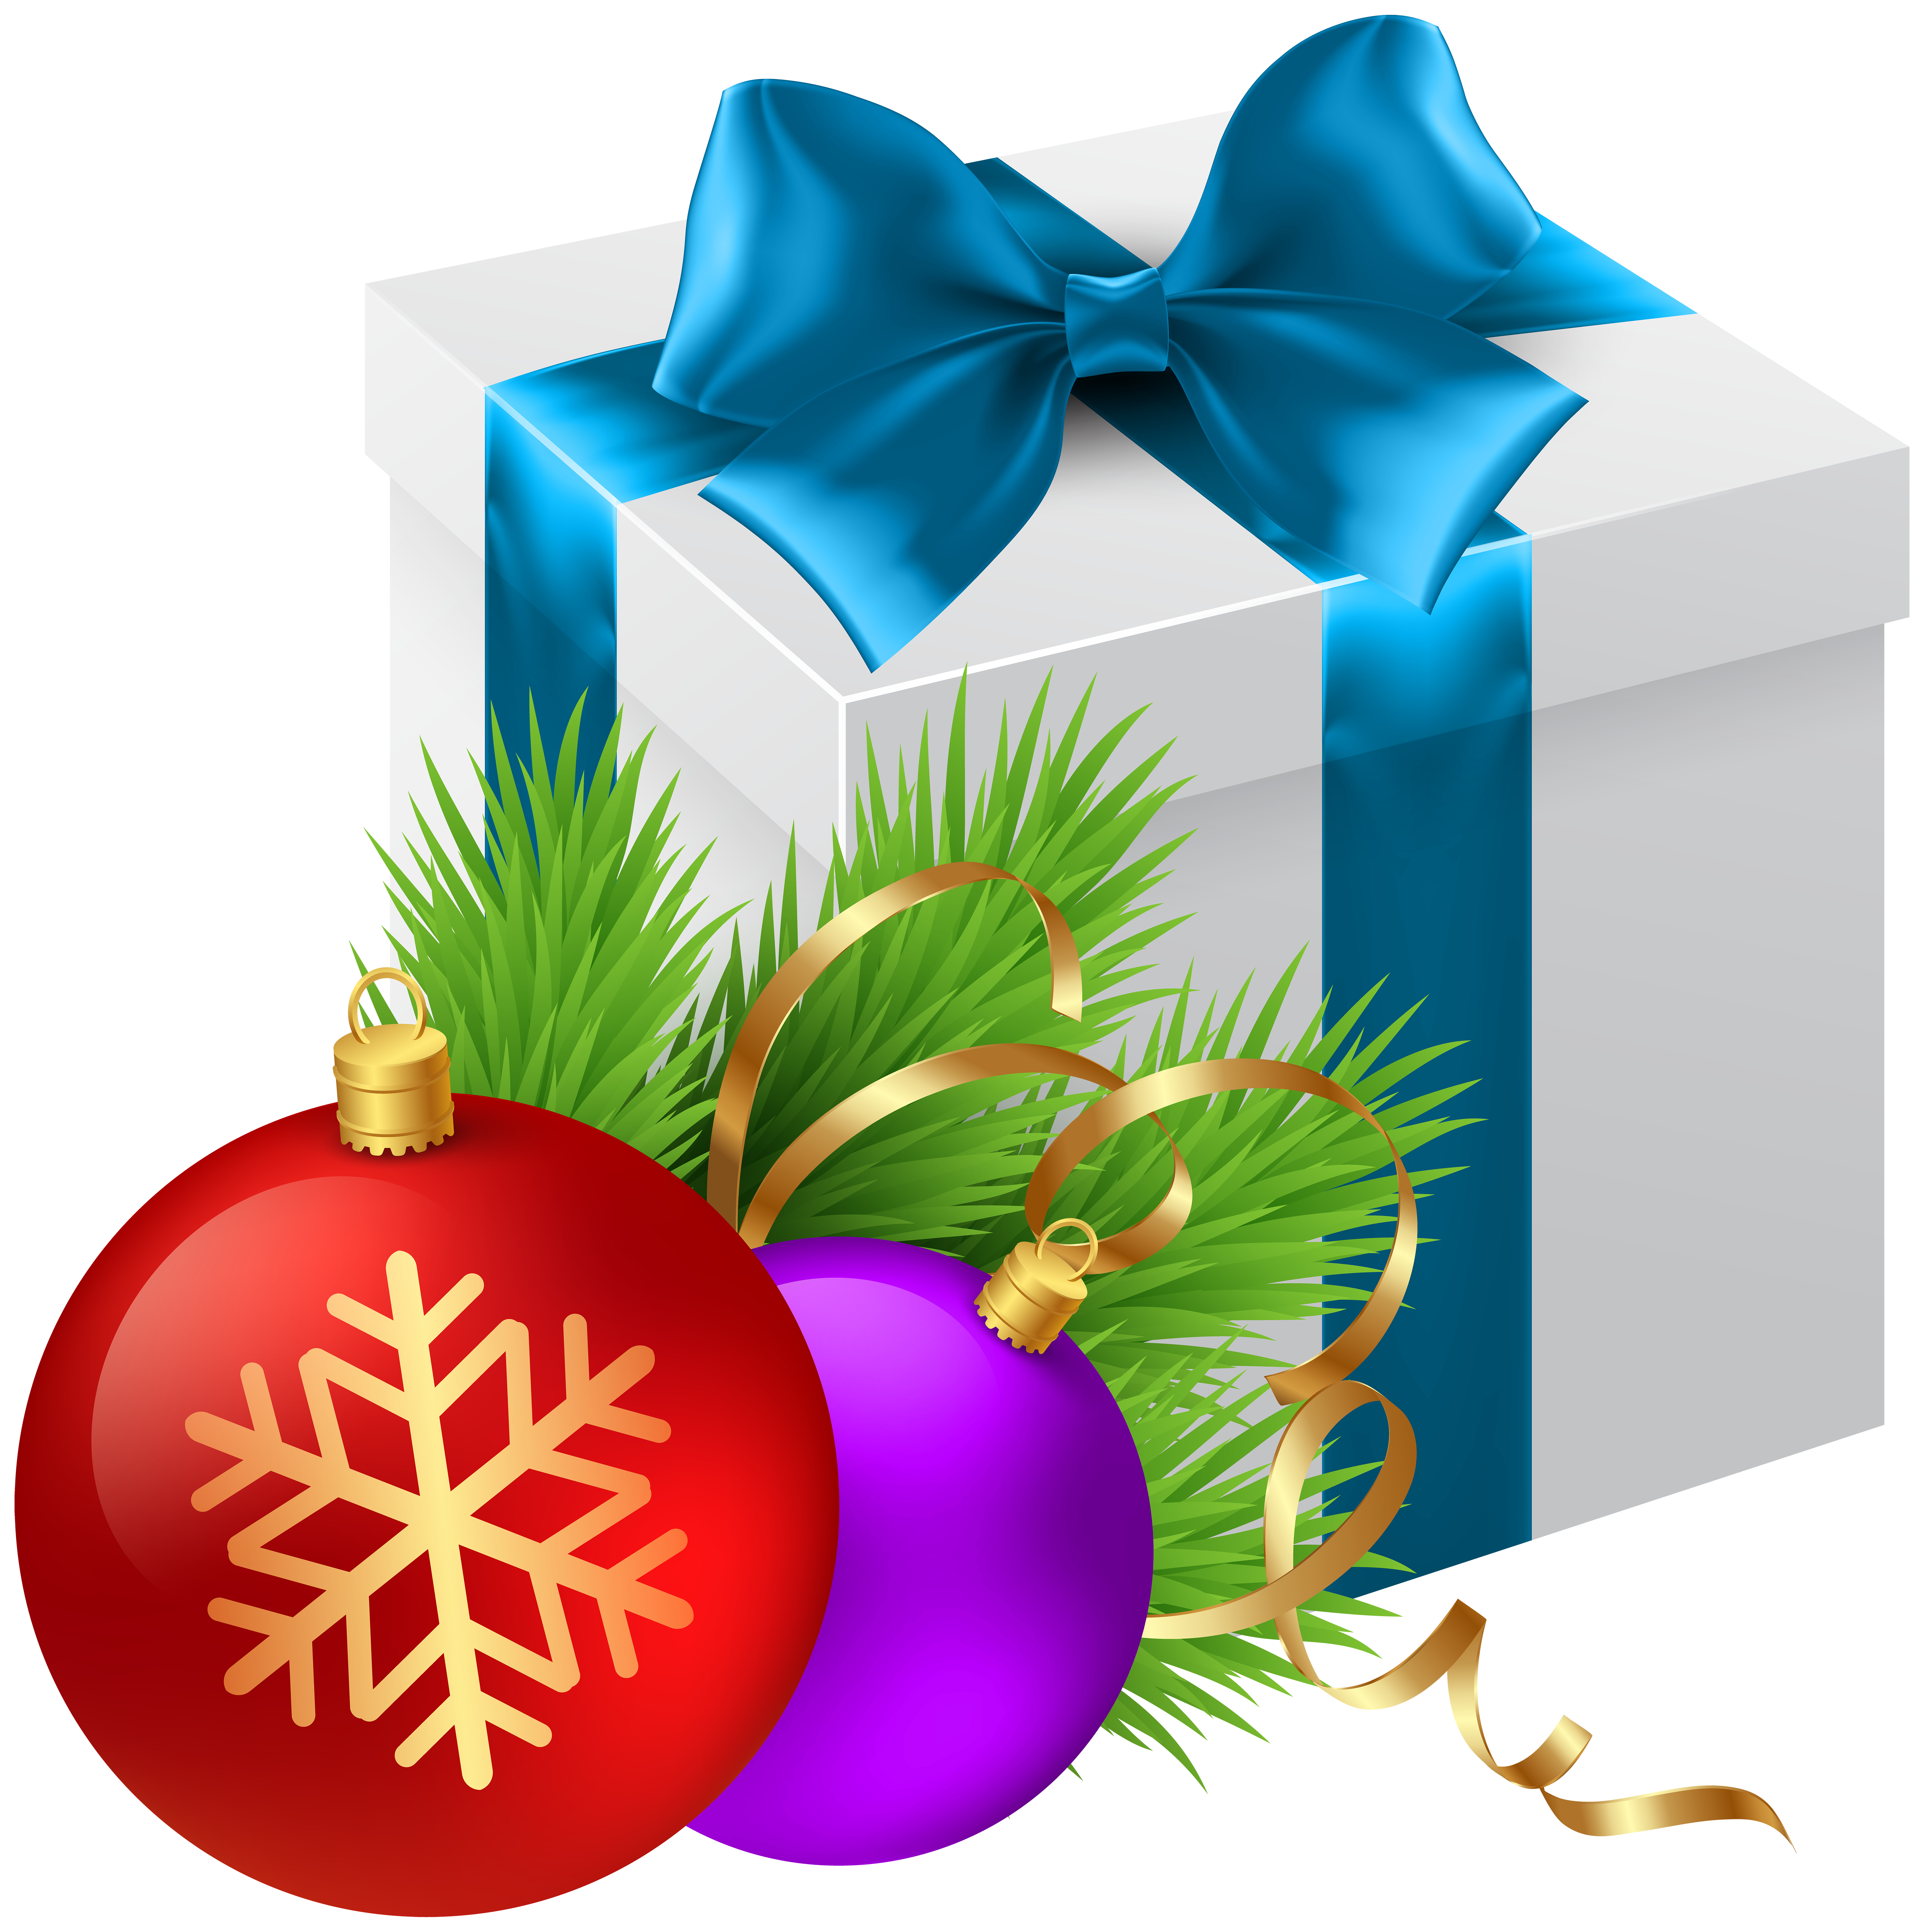 Christmas gift transparent.